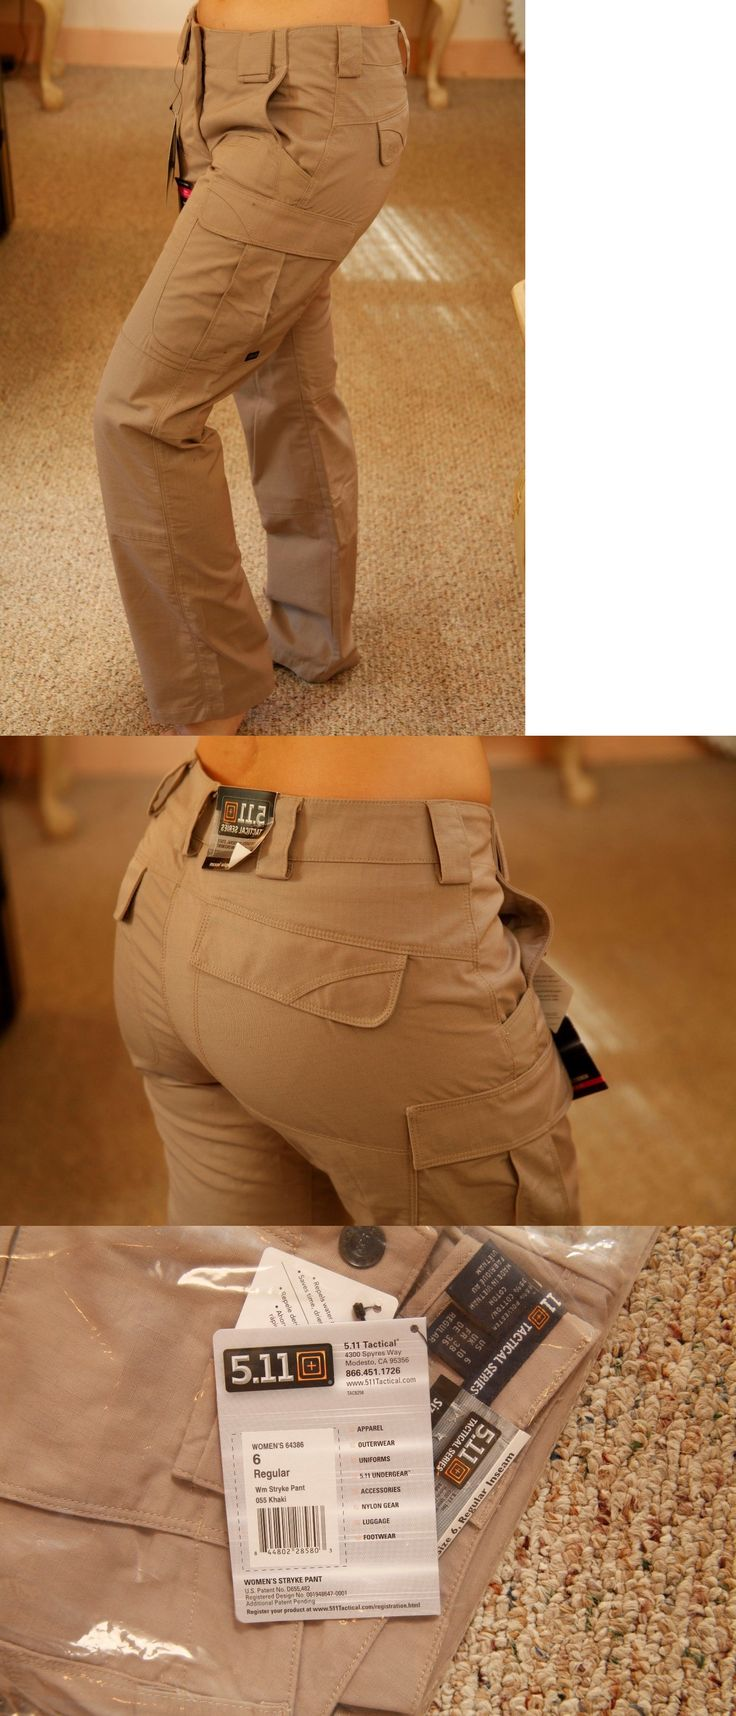 Tactical Clothing 177896: 511 Tactical Stryke Pant Women 6 Regular Khaki Tan Beige Cargo Nwt -> BUY IT NOW ONLY: $58 on eBay!